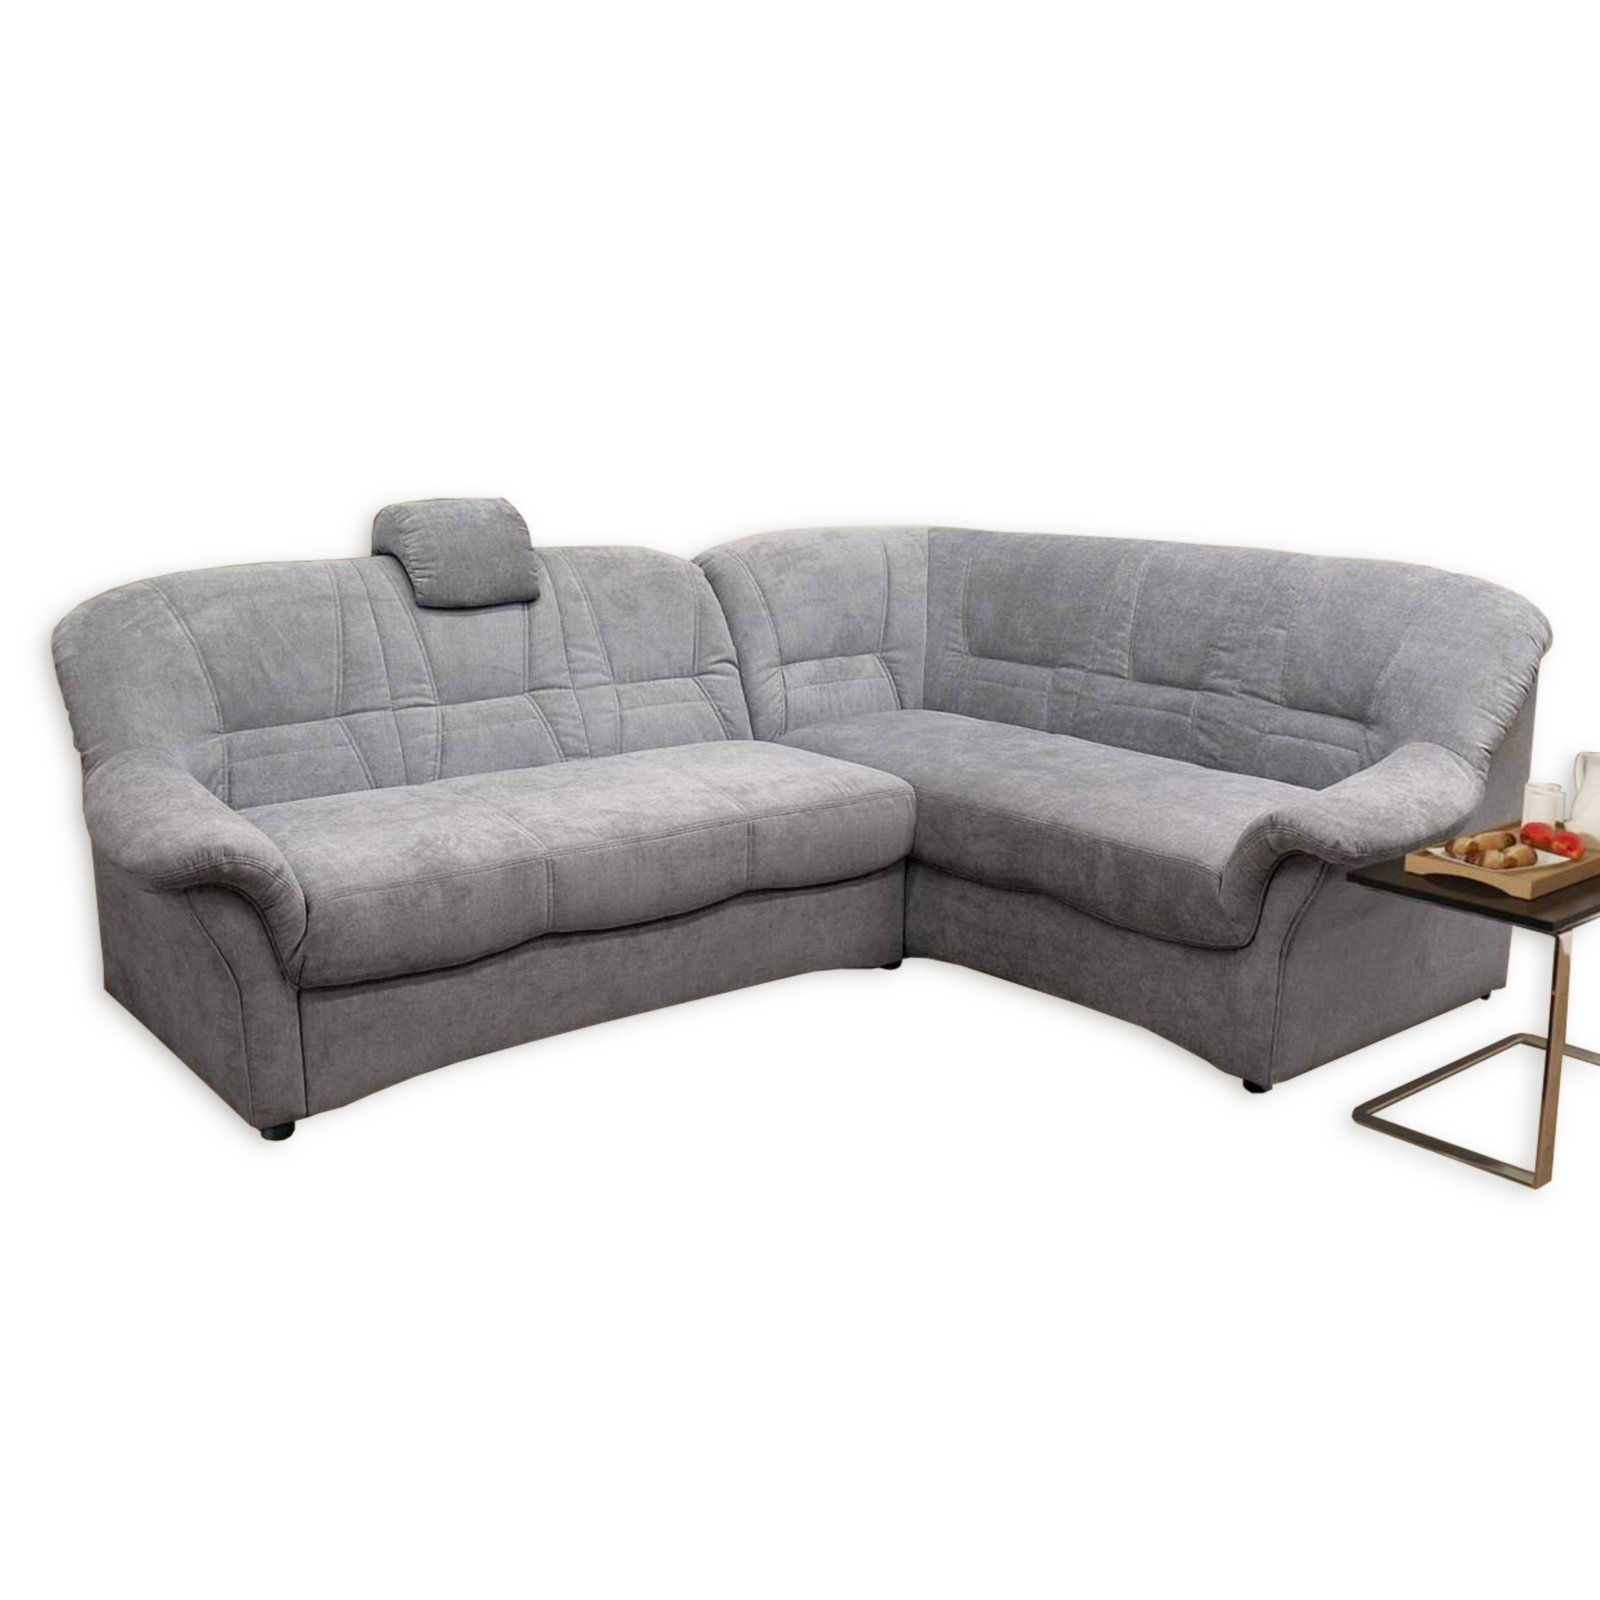 Sessel Runde Form Rundes Sofa Runde Sofas Homeandgarden Lacoon Island Sofa